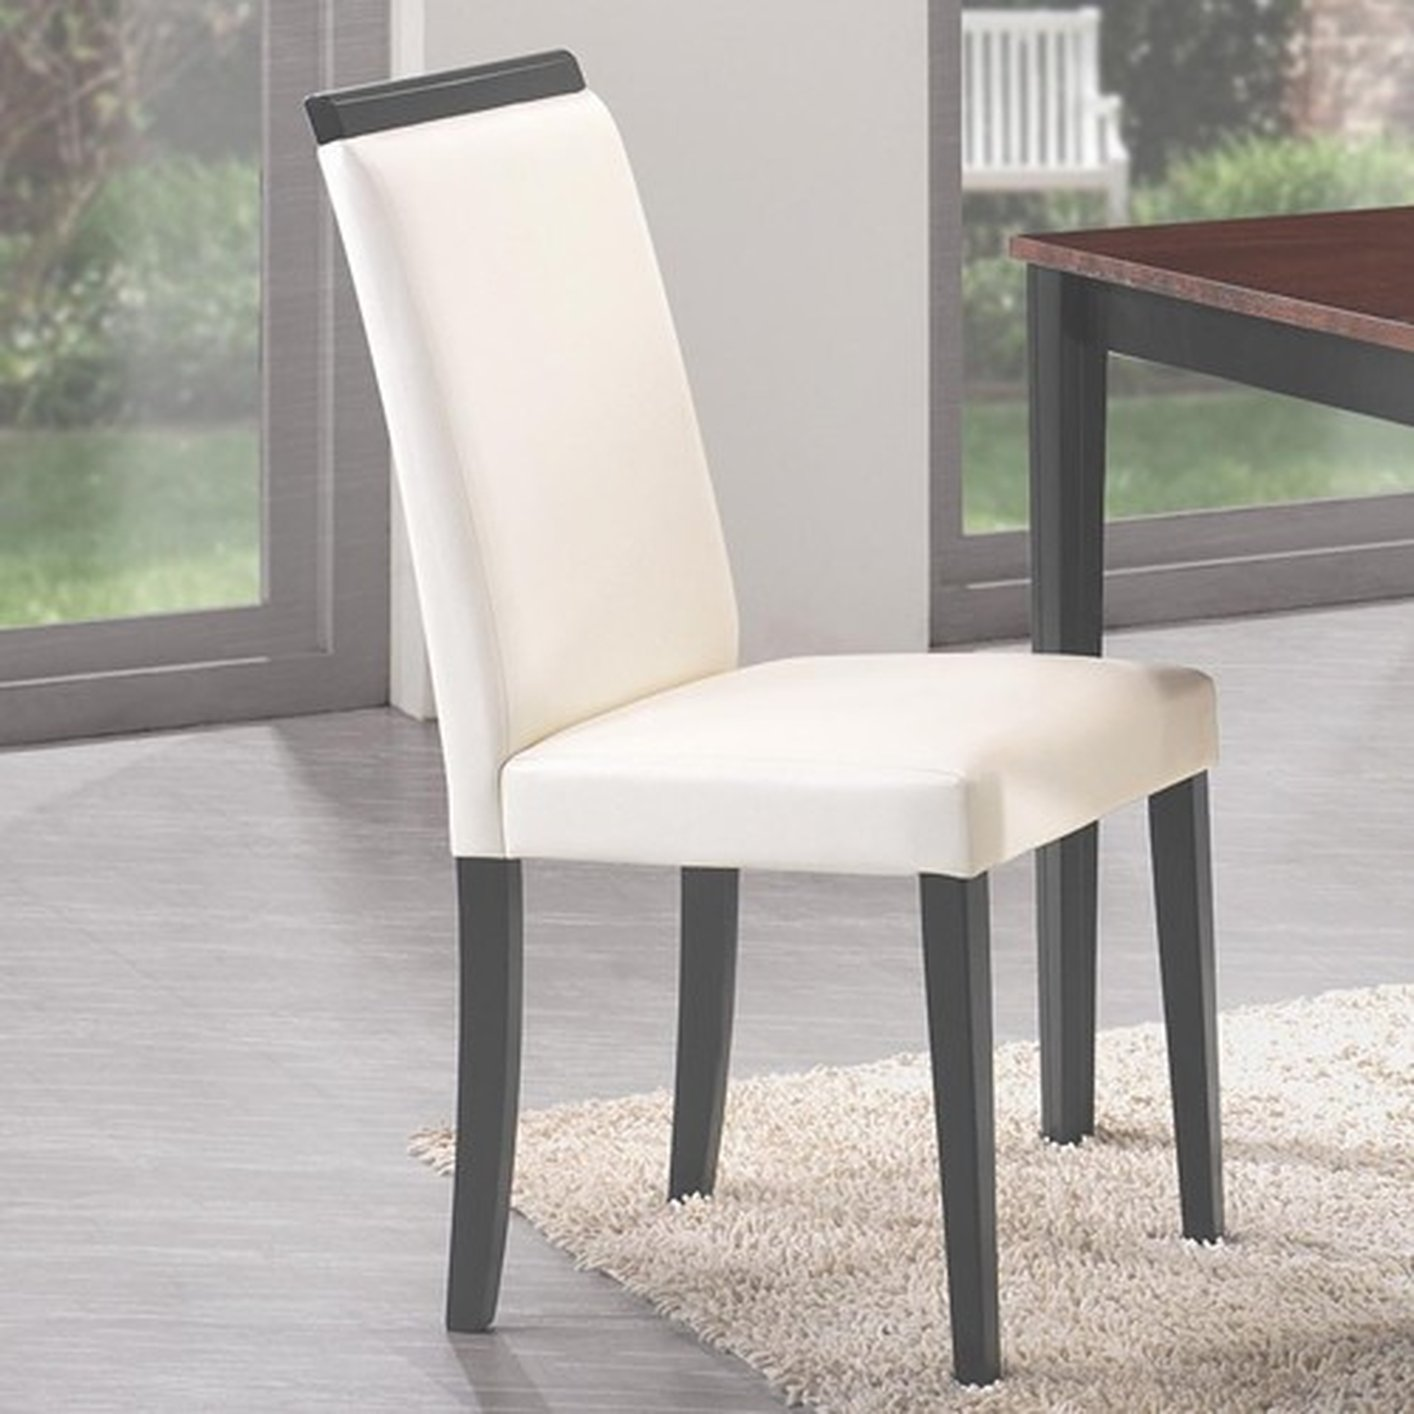 Beige Leather Dining Chairs Beige Wood Dining Chair